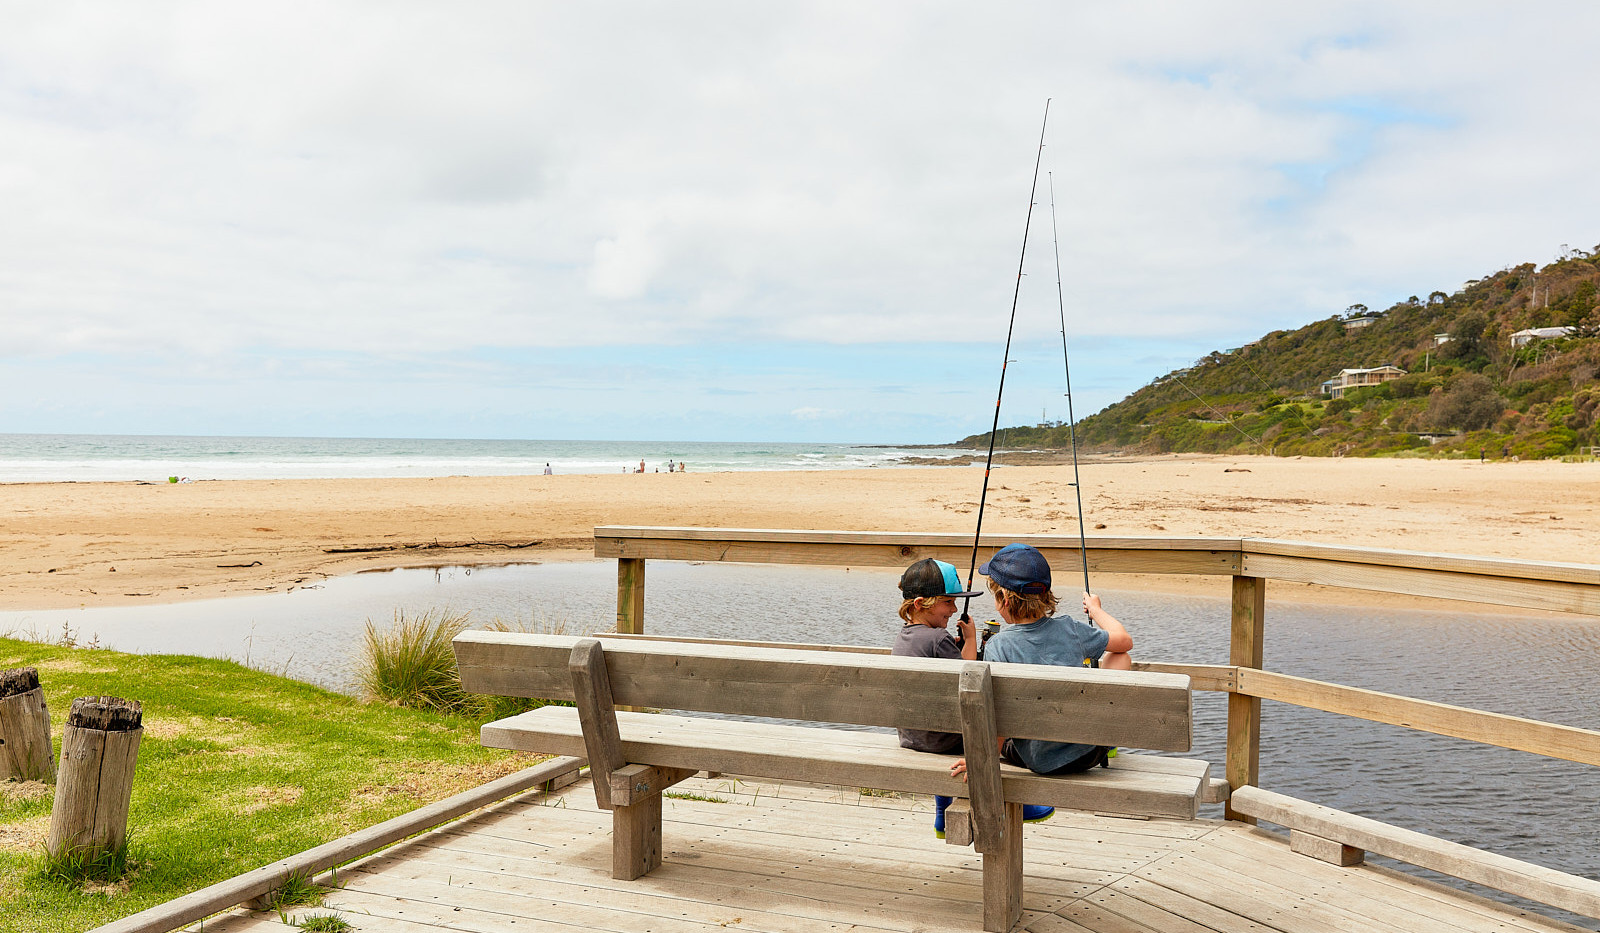 wye river - activities page - explore th